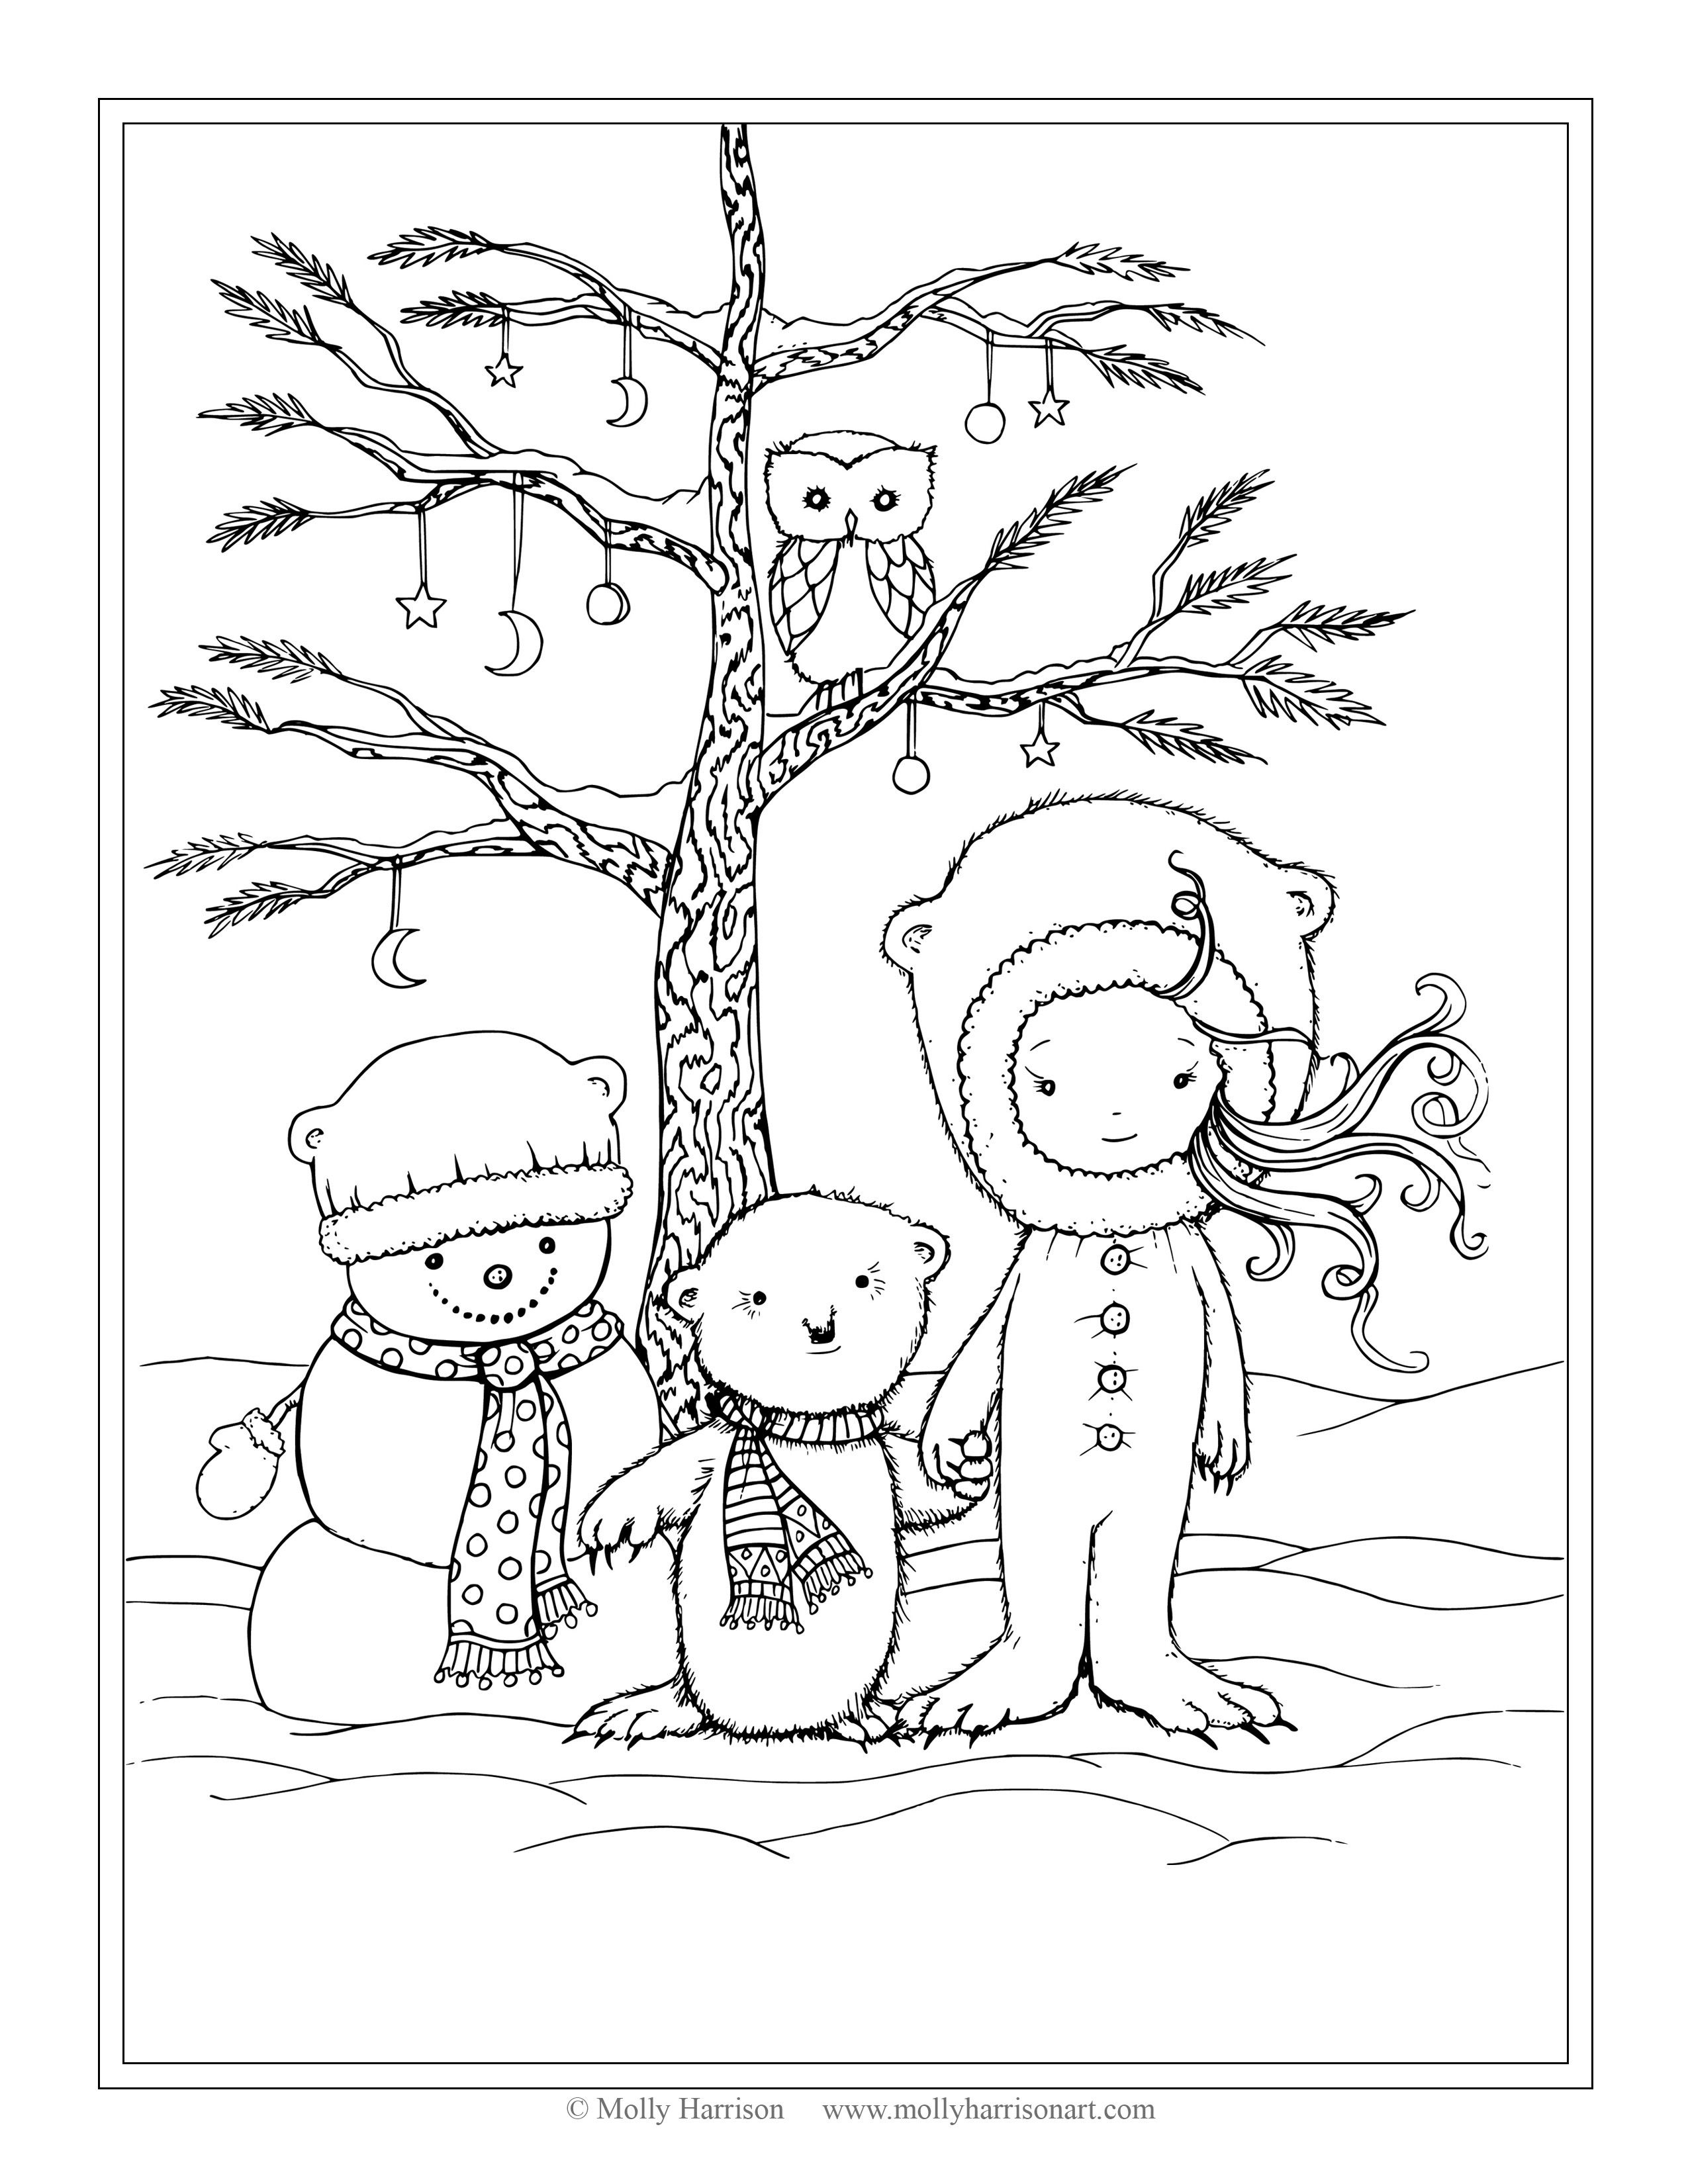 Polar Express Color Pages Free Polar Express Coloring Pages At Getcolorings Free